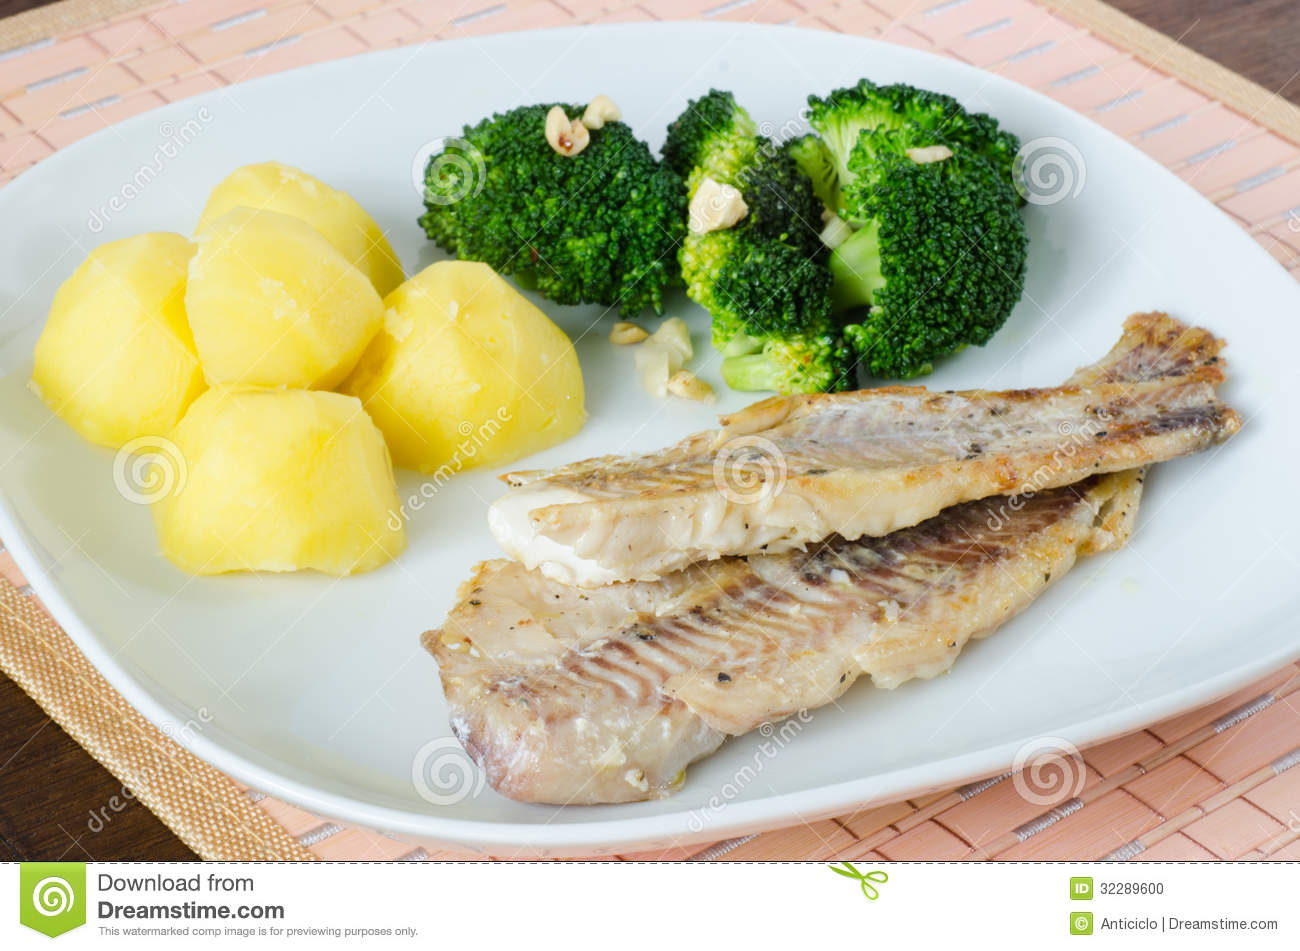 Plain slices of grilled fish with potatoes and broccoli for Fish and broccoli diet